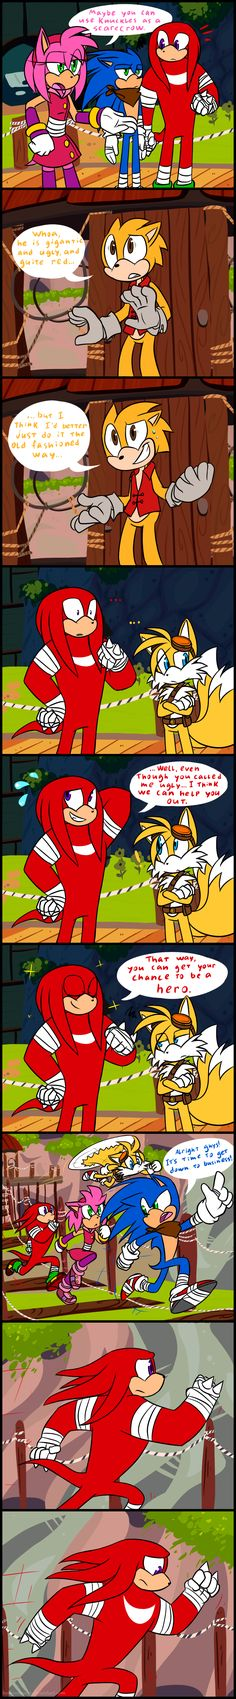 Sonic Boom: Leave Knuckles alone!!! by HoshiNoUsagi on DeviantArt